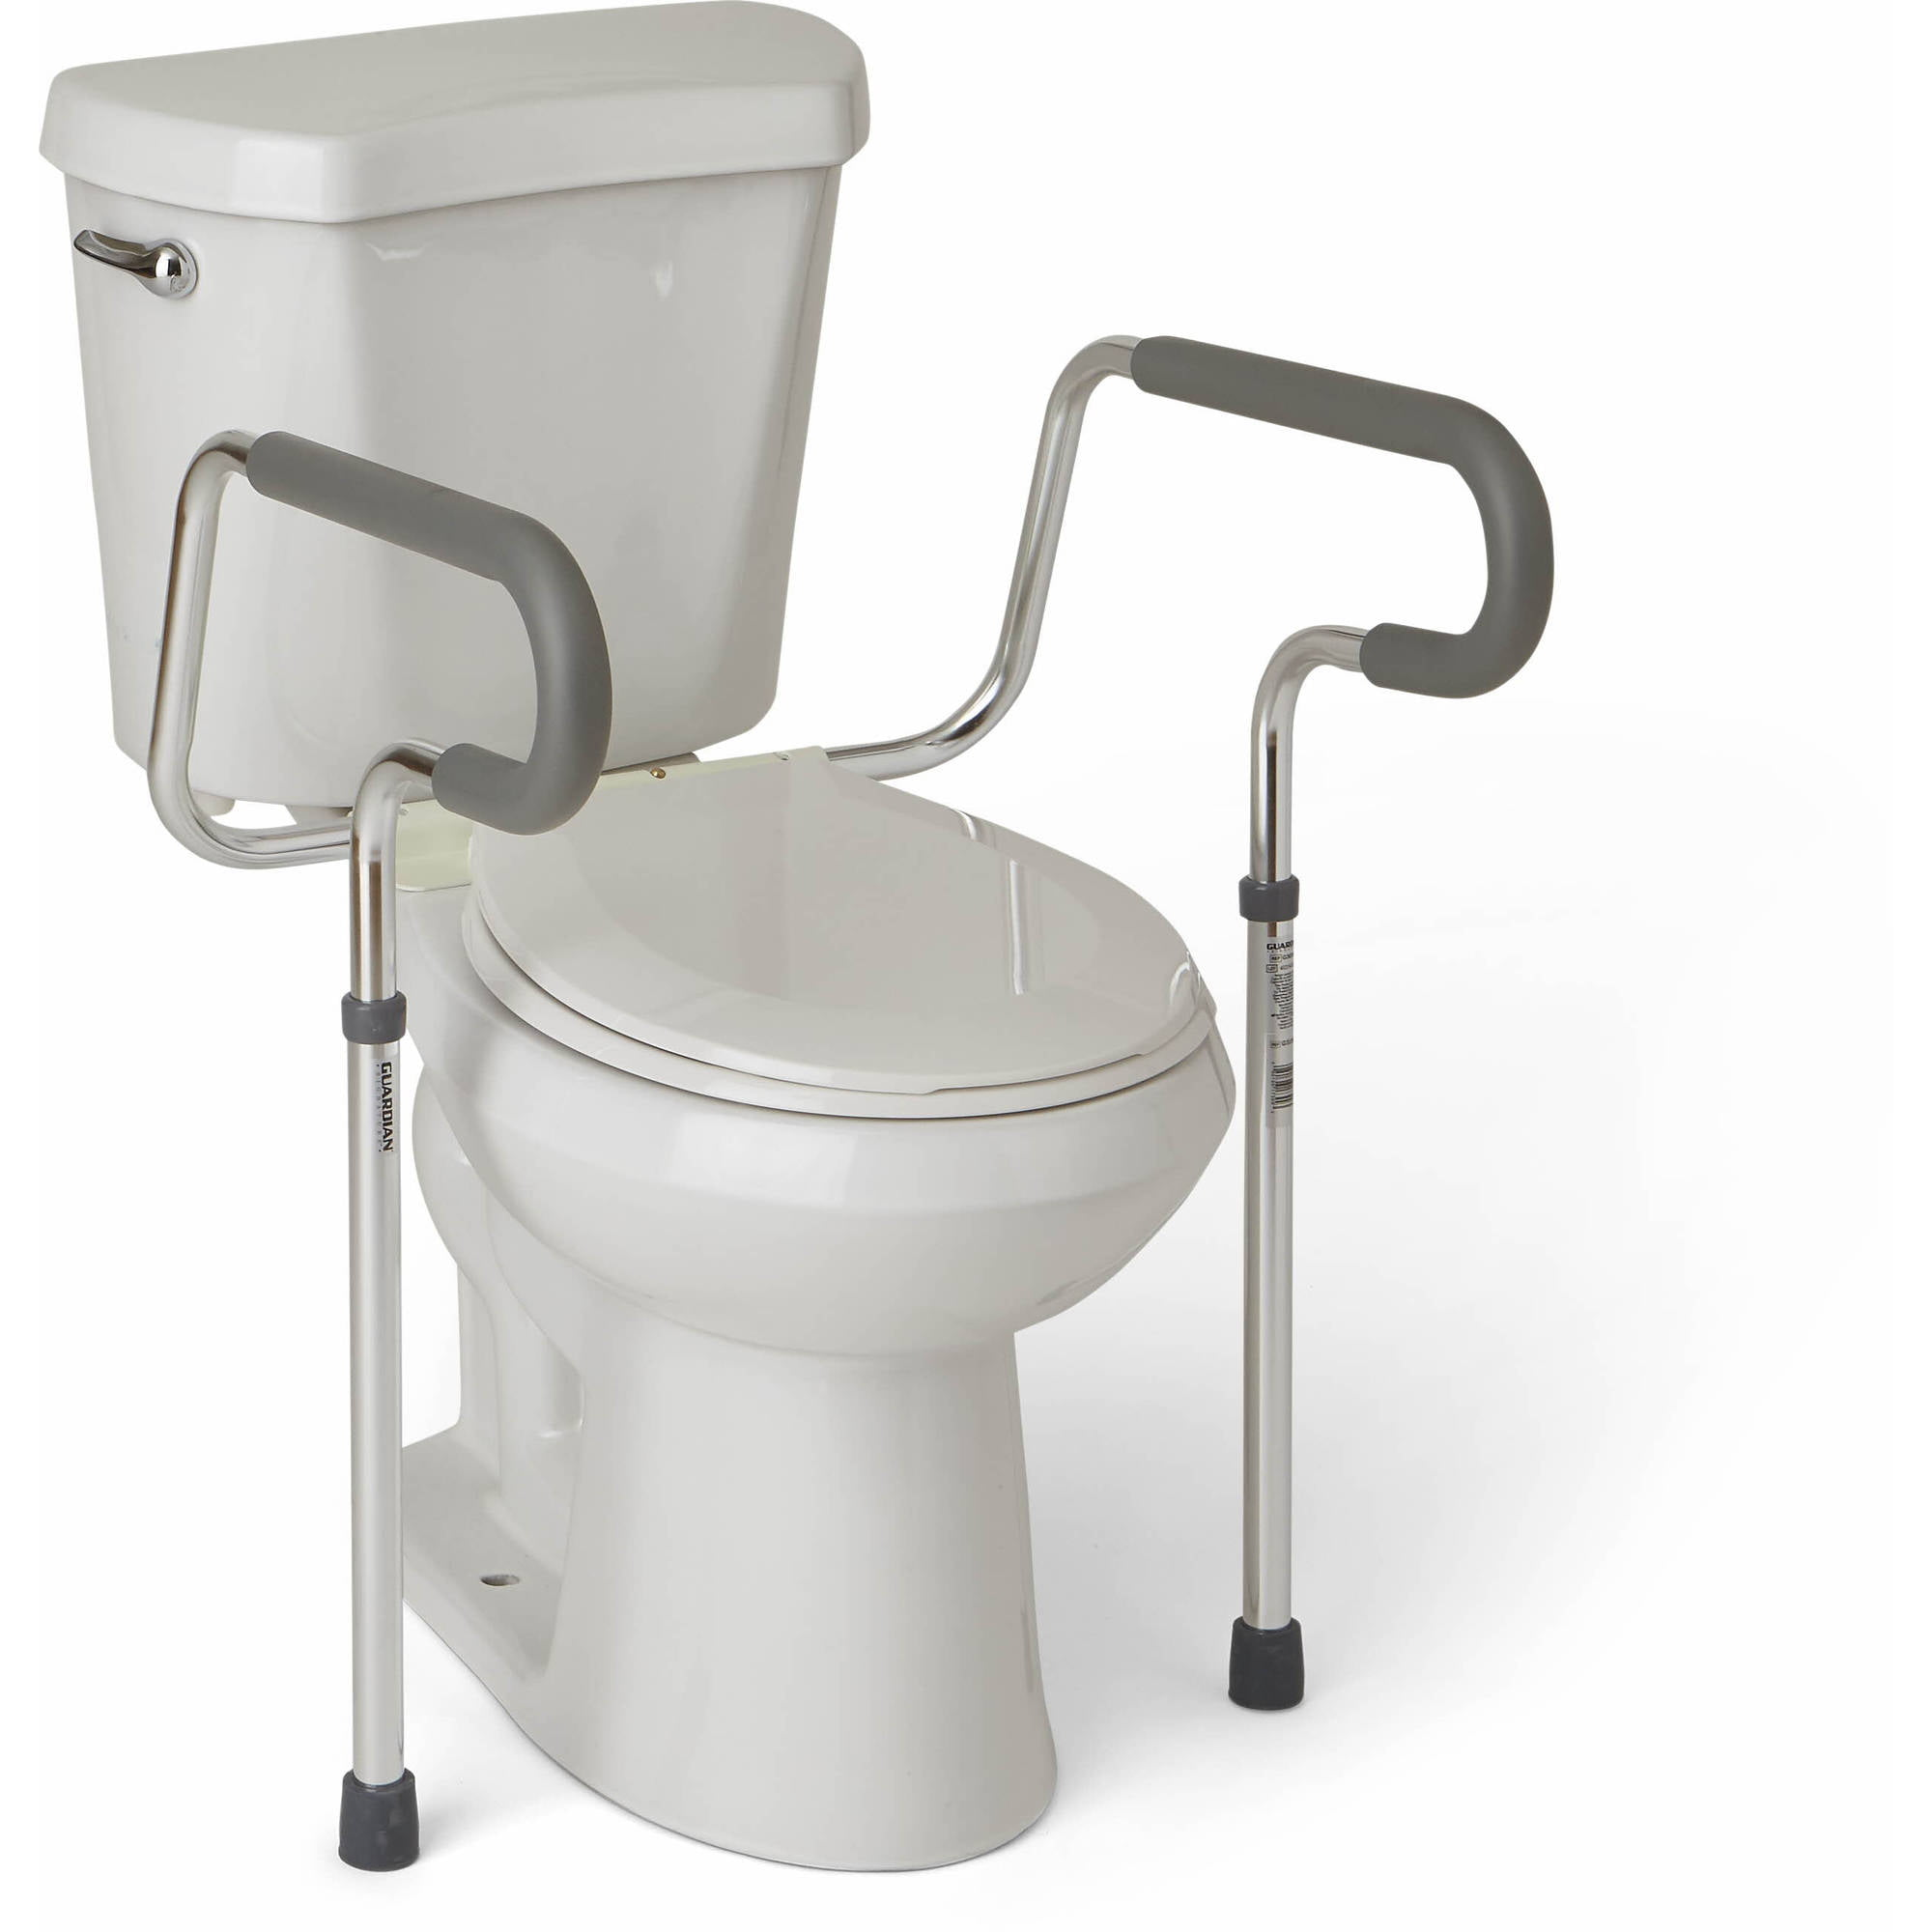 Carex Bathroom Toilet Safety Rail Frame - Walmart.com